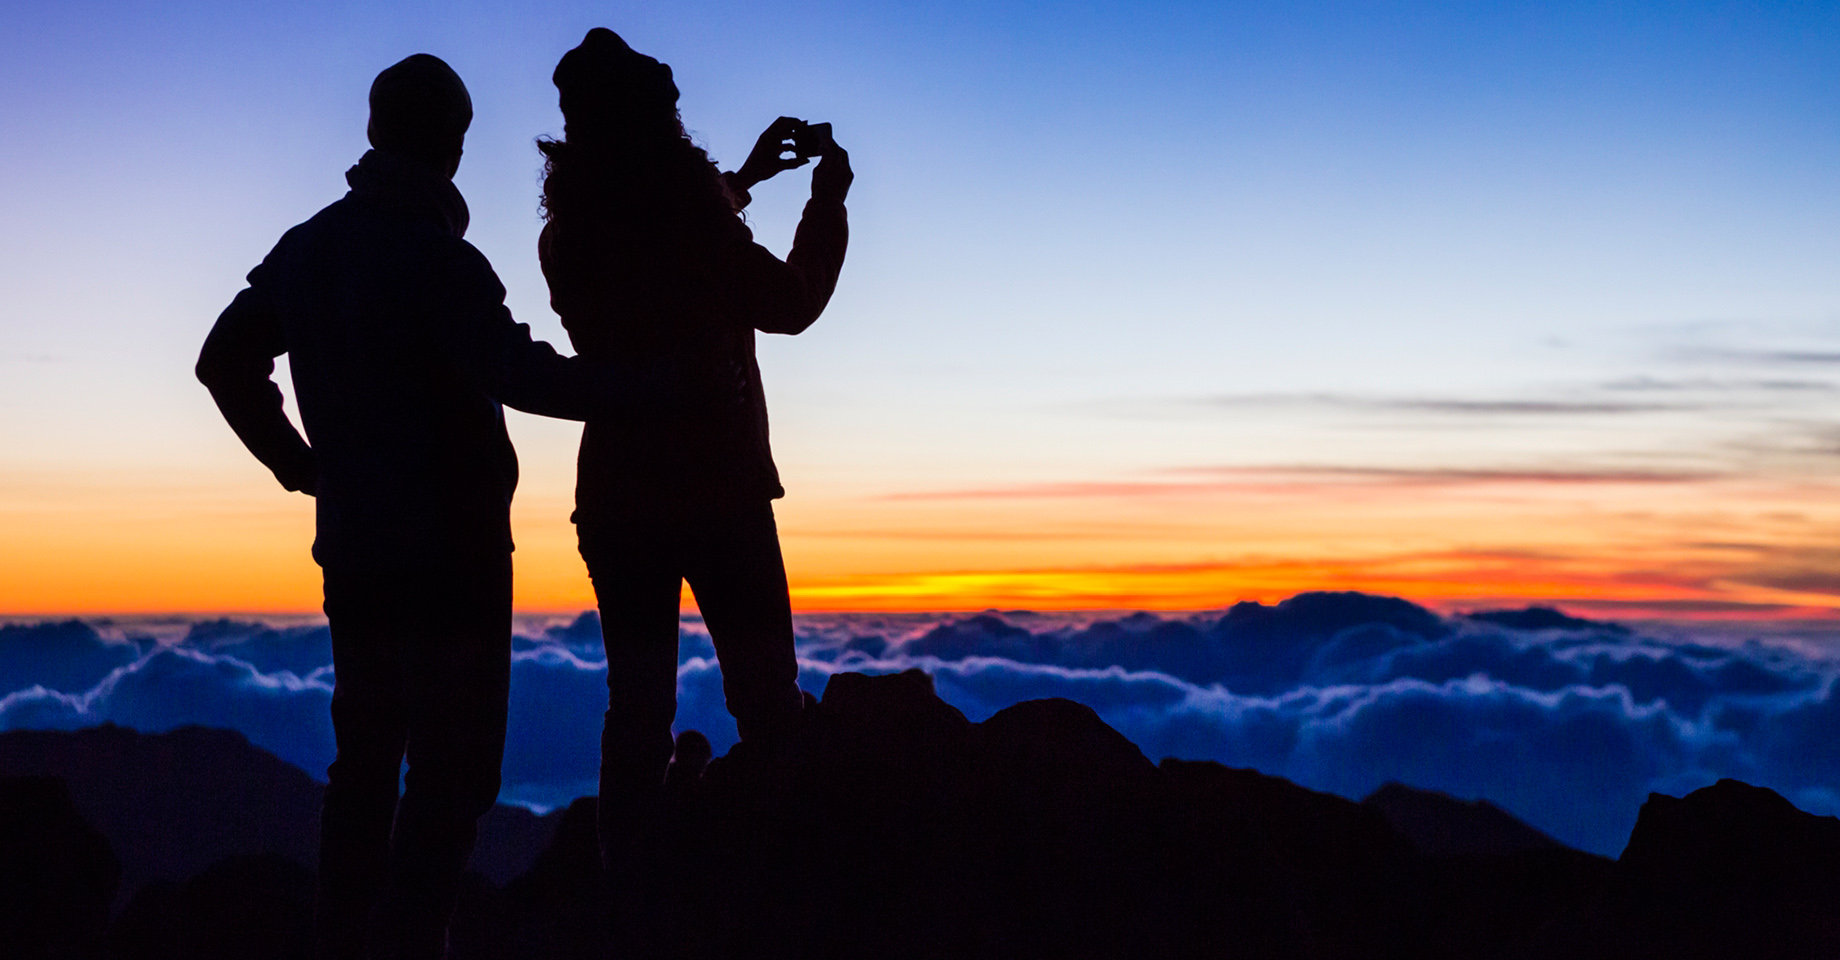 Sunrise on Mt Haleakala